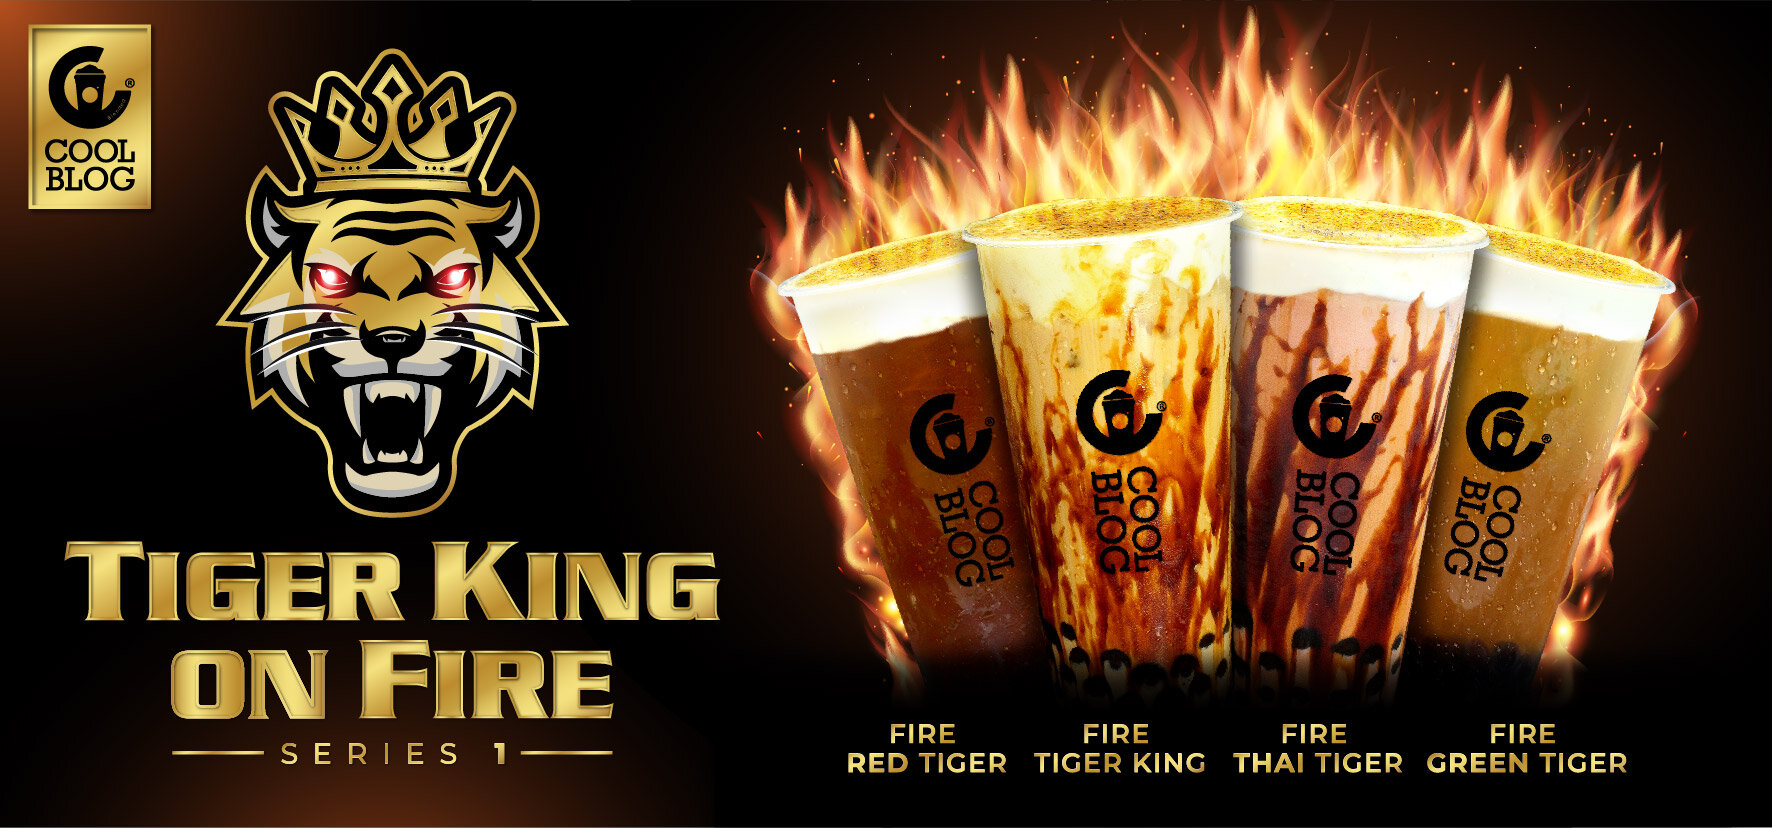 TIGER KING_Series 2019 Email Signature-01.jpg